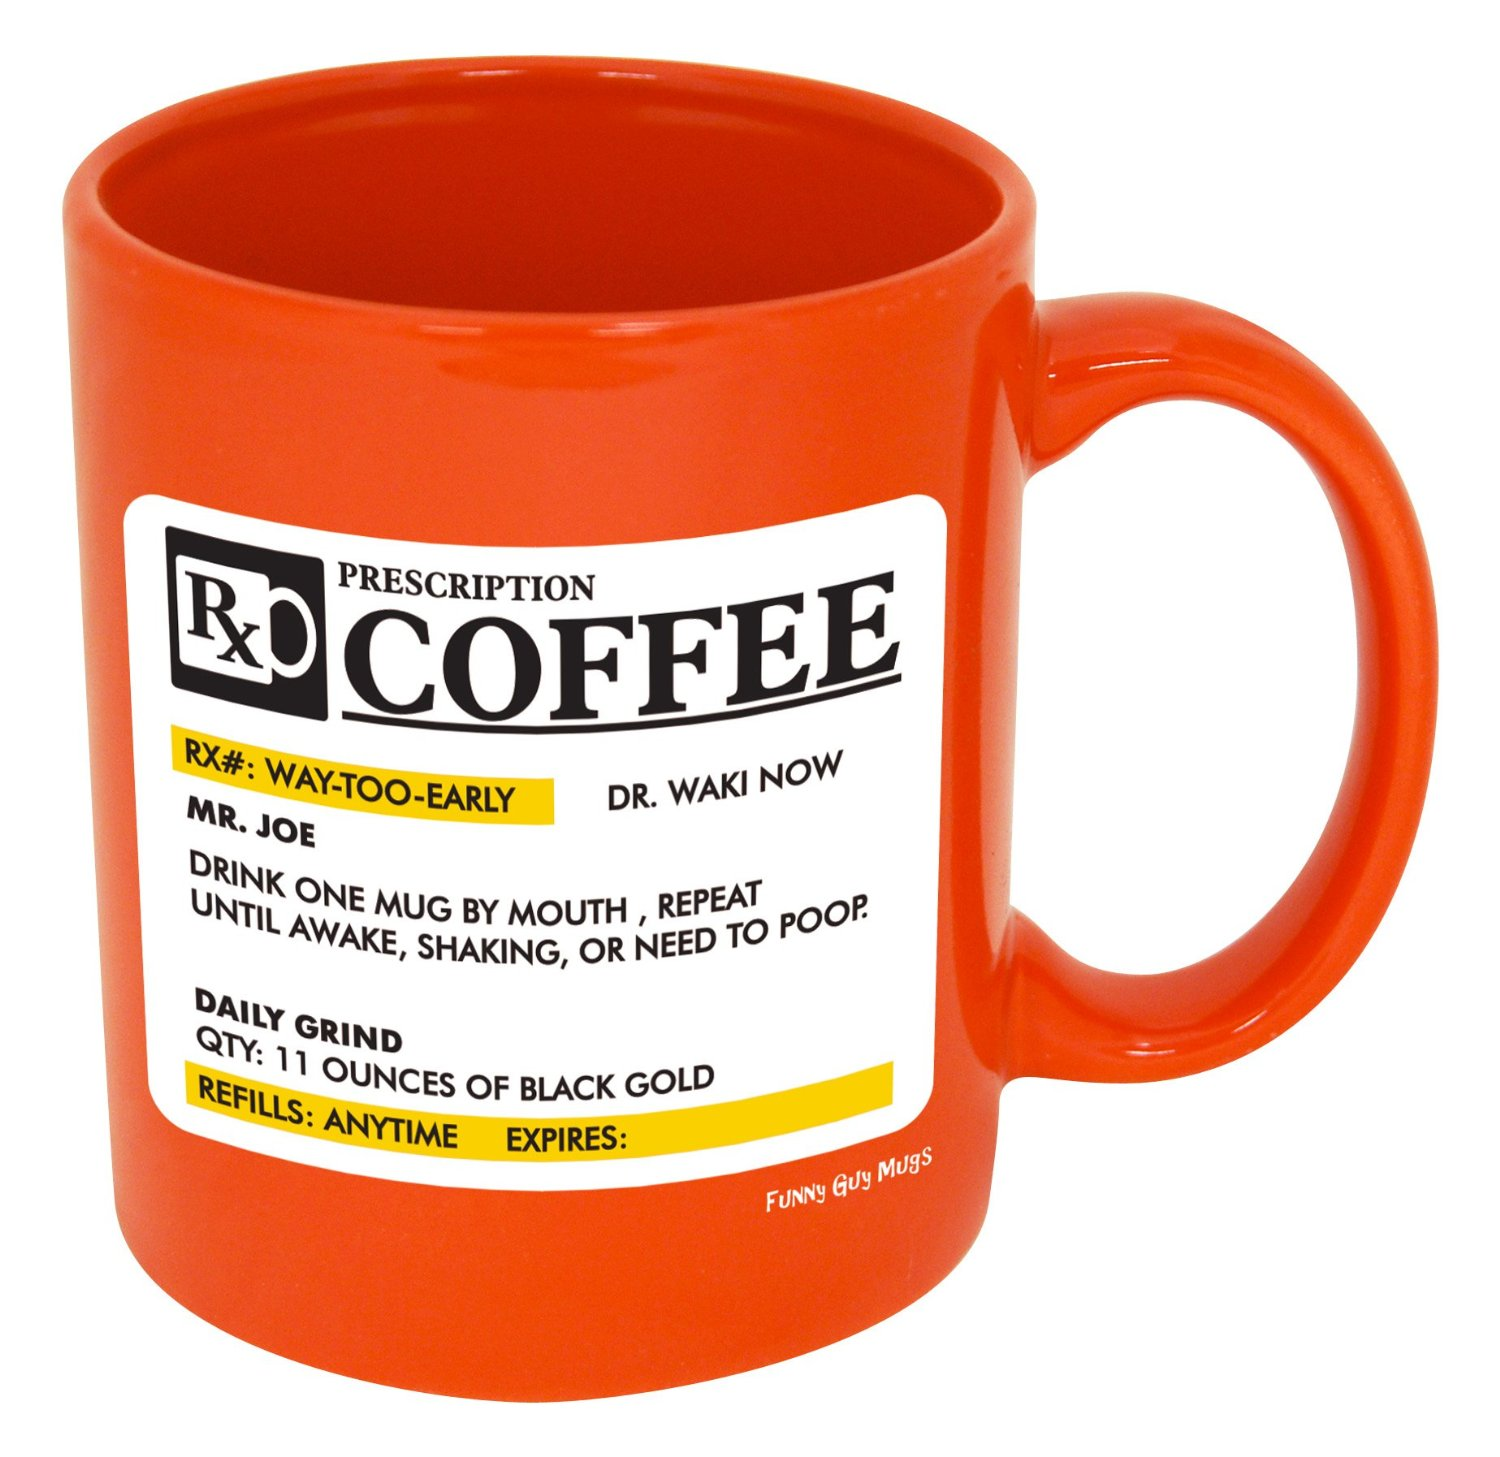 Top 10 Office Coffee Mugs Which One Is Your Favorite